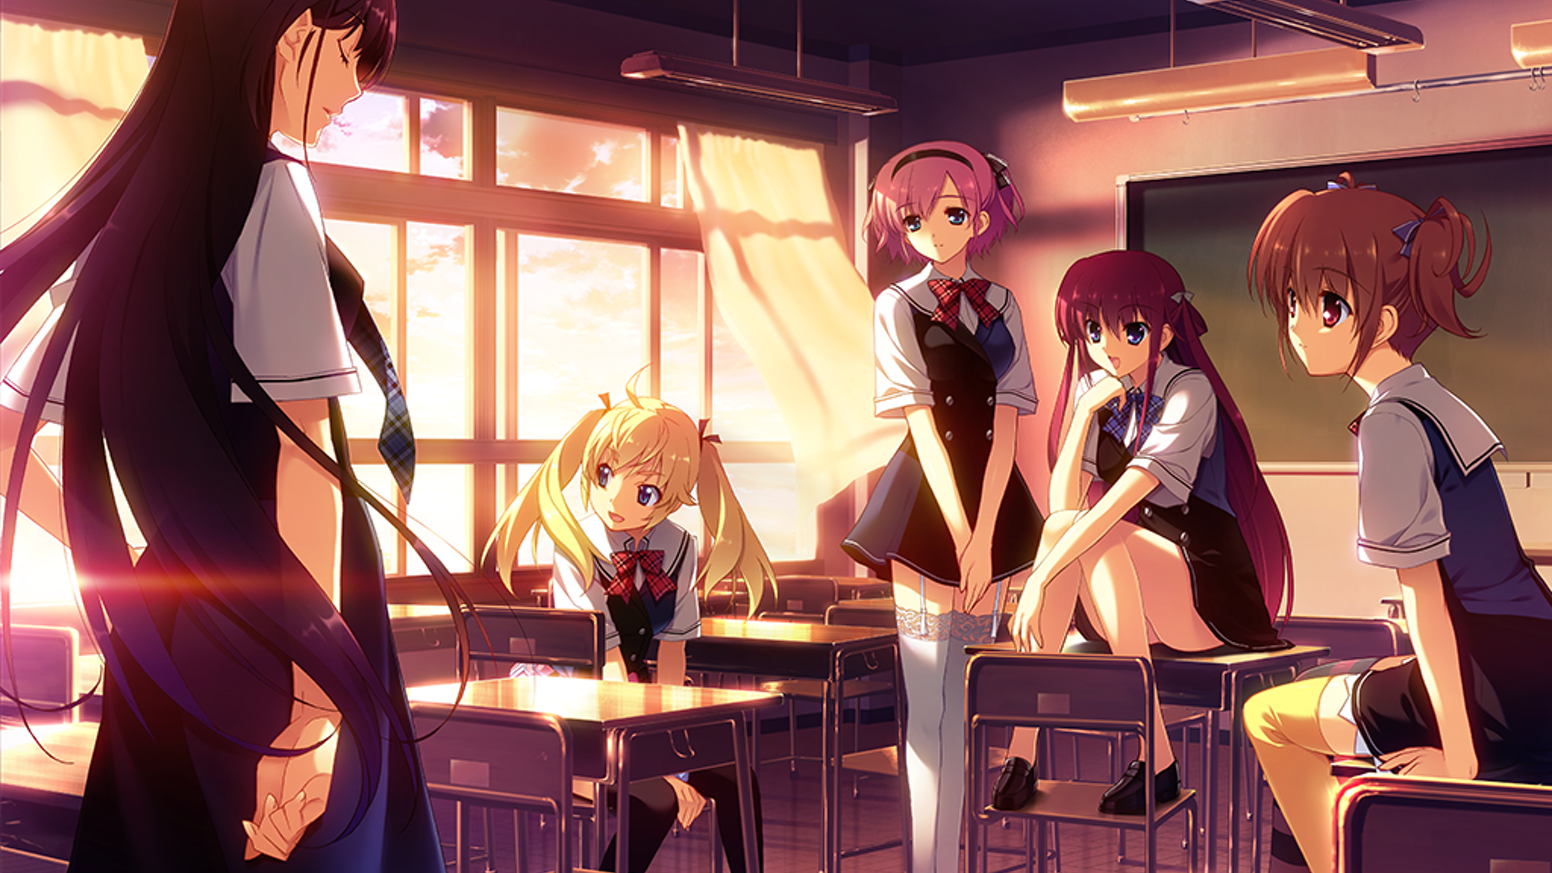 Sekai Project wants to bring Frontwing's beautiful series of visual novels to the West. Get the full story that inspired the anime!